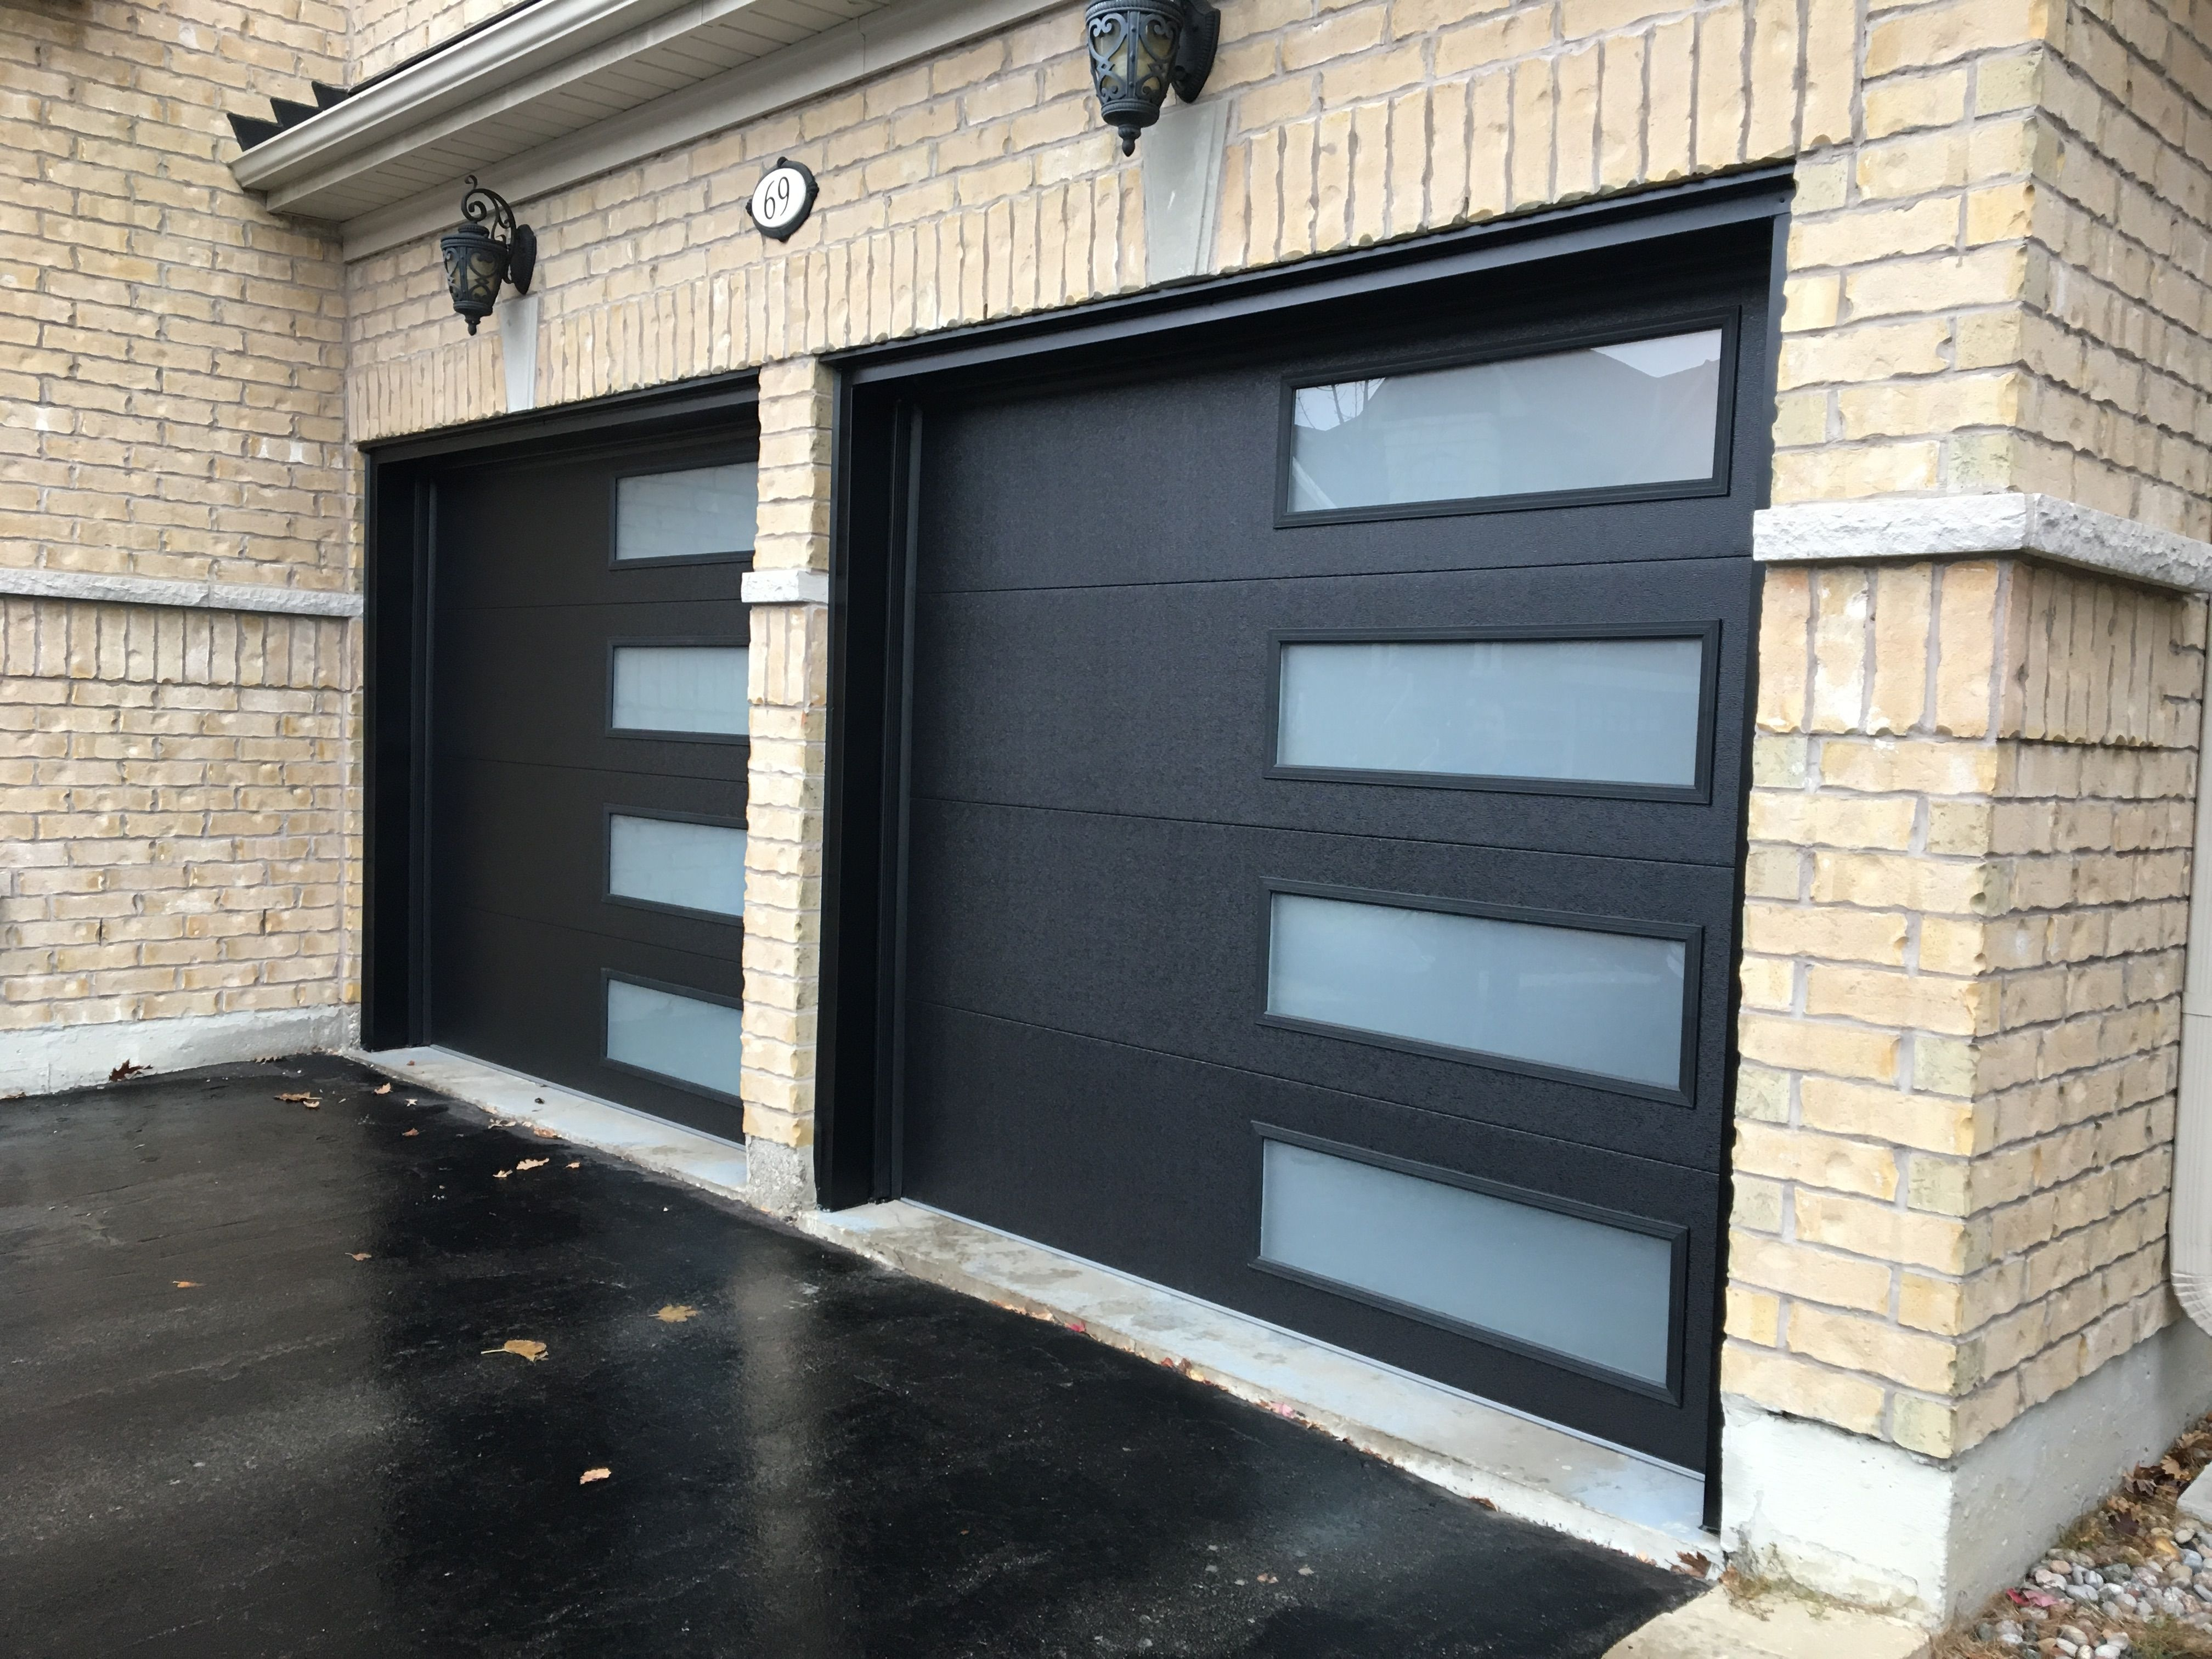 Jet Black Steel Garage Doors Have An Impressive Design With Color And Vertical Window Pattern Perfect For Contemporary O Com Imagens Portao De Garagem Casas Portas De Aco